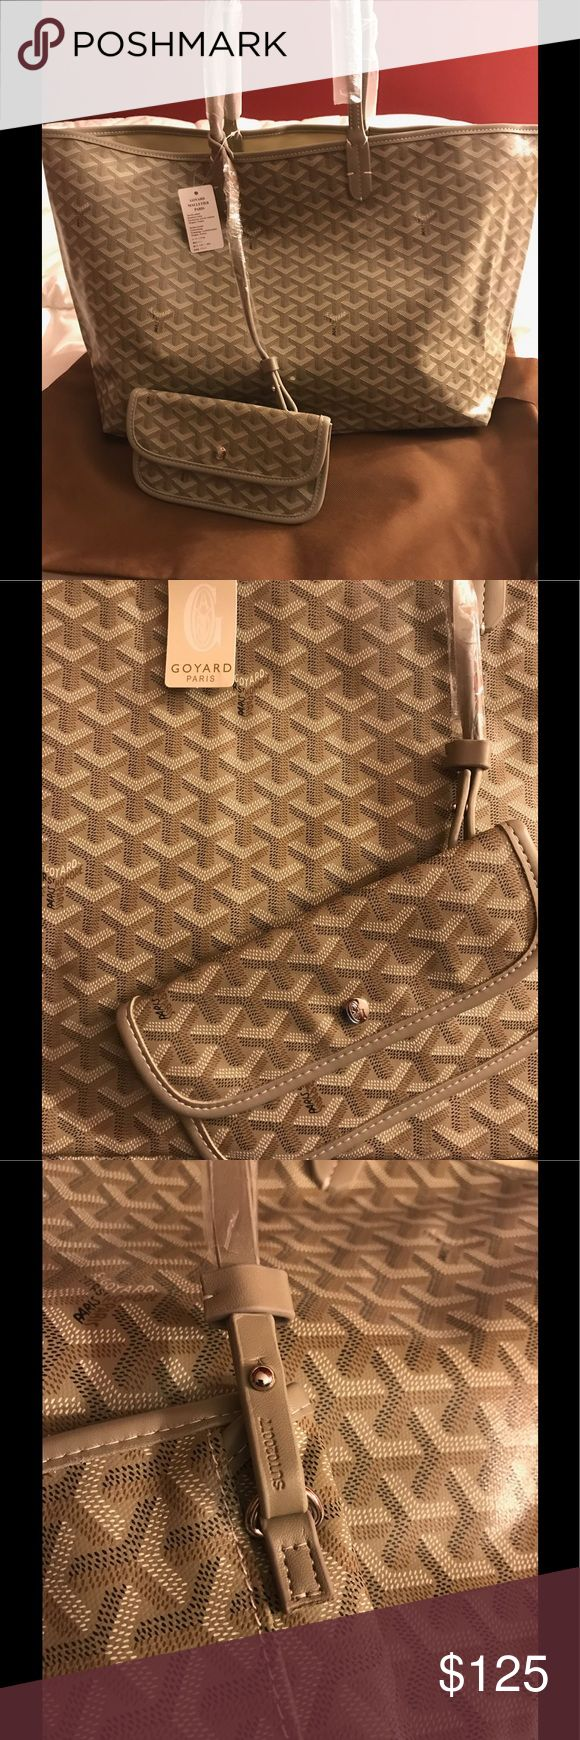 Goyard GM TOTE beautiful read description Very high quality genuine leather reason for price this is NOT authentic COLOR KHAKI Bags Shoulder Bags